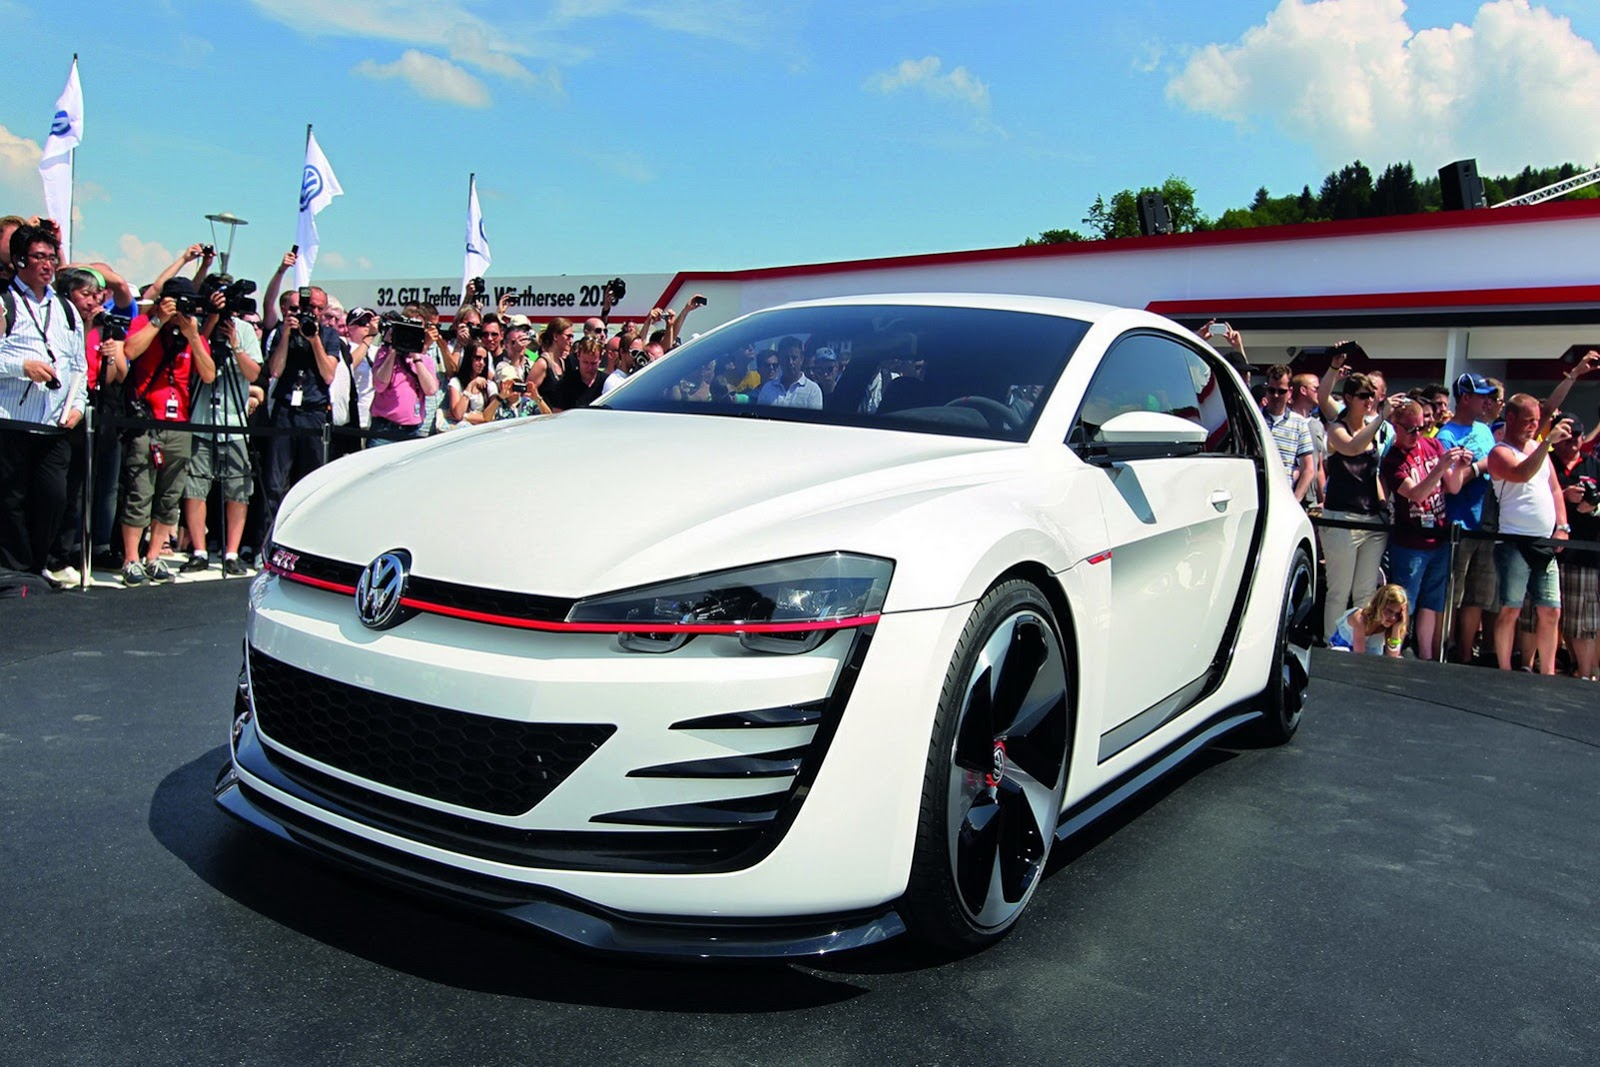 Golf 8 Gti Pictures, Images & Photos | Photobucket